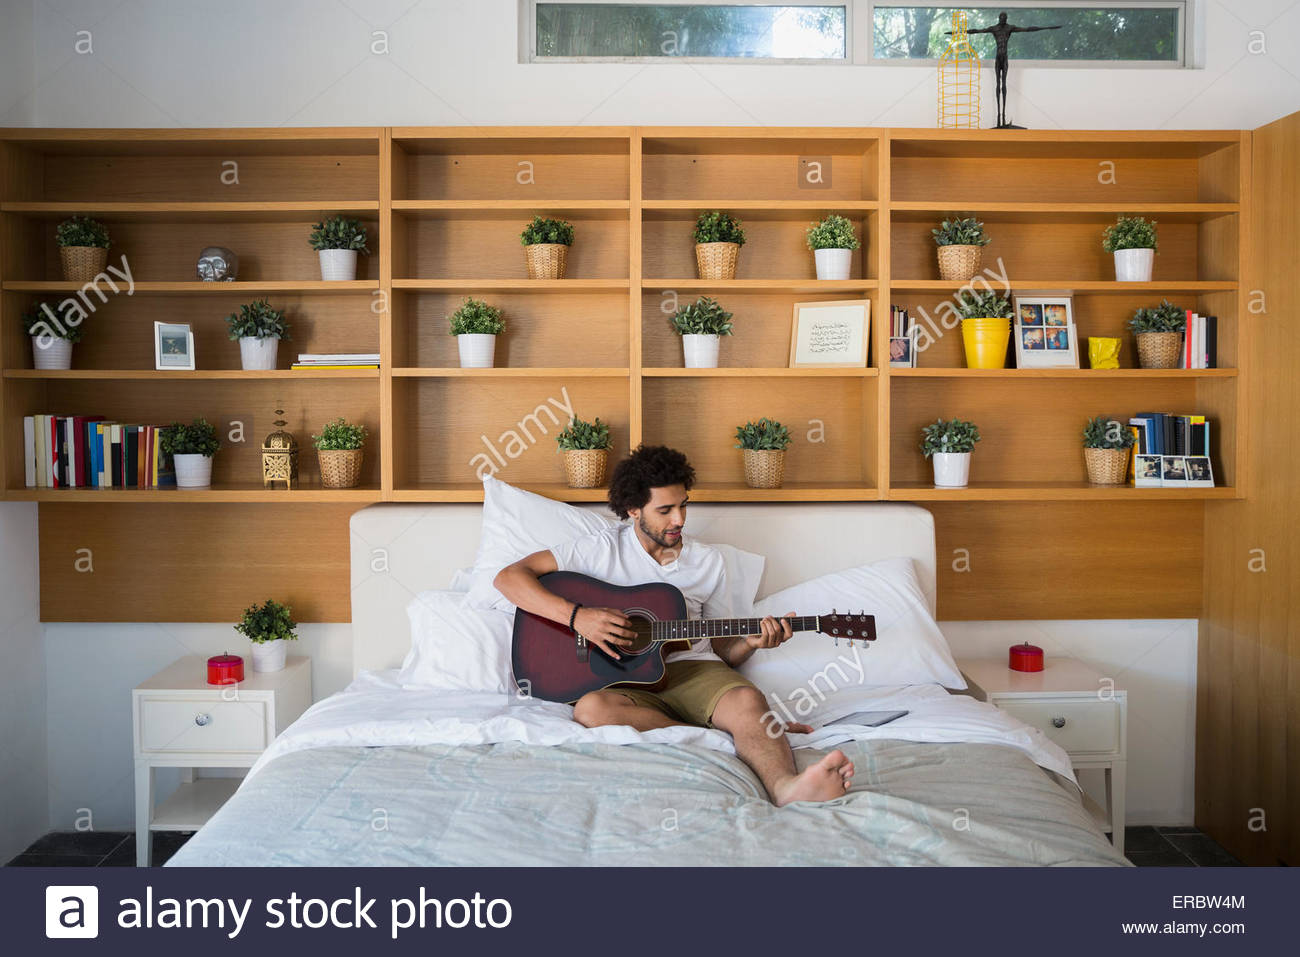 Man playing guitar on bed in bedroom   Stock Image. Acoustic Guitar Bedroom Stock Photos   Acoustic Guitar Bedroom